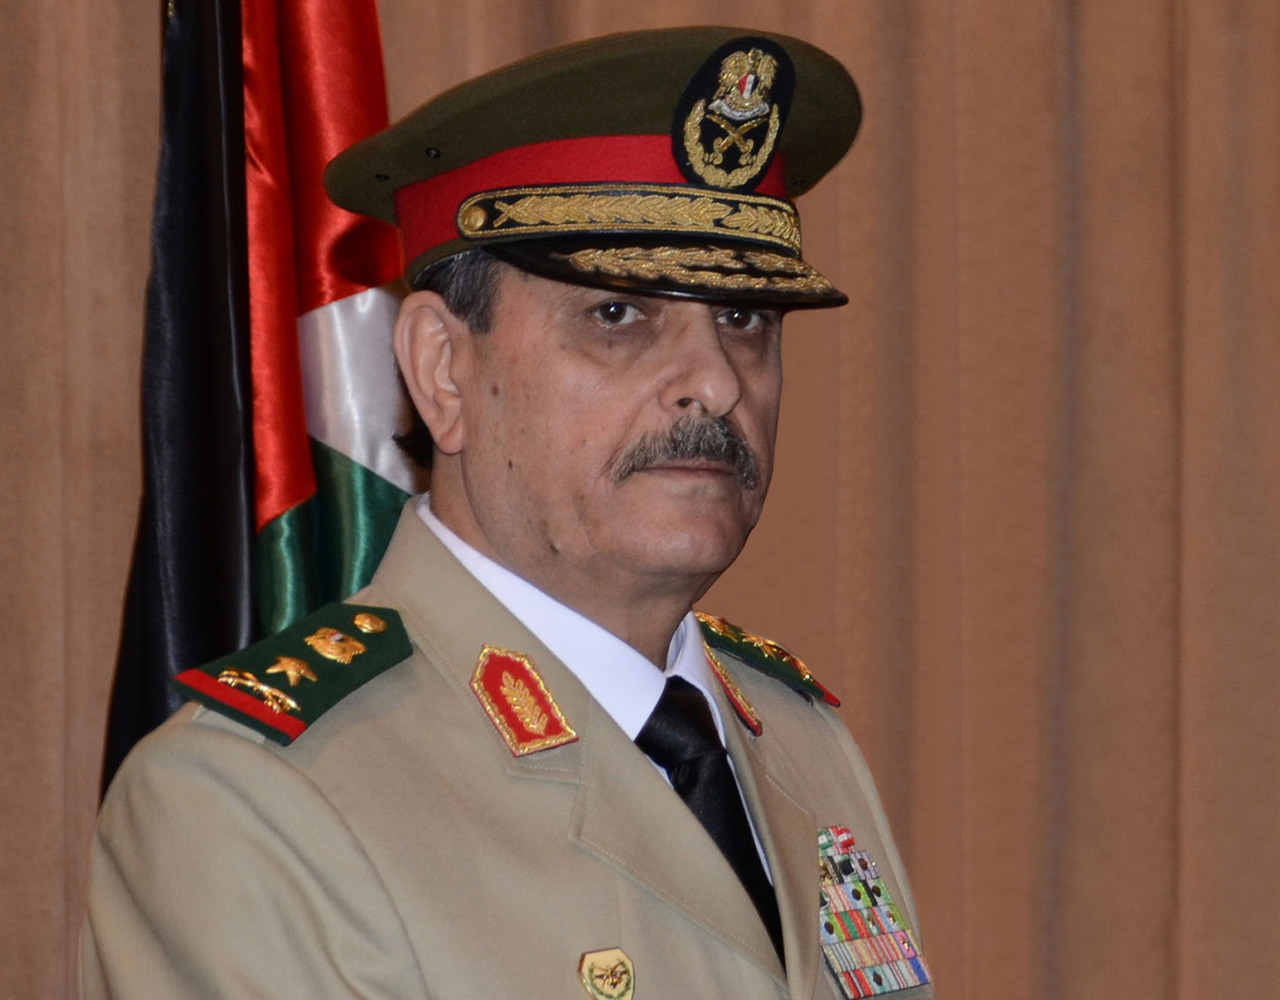 "reuters:  Syria's defense minister and President Bashar al-Assad's brother-in-law were killed in a Damascus suicide bomb attack carried out by a bodyguard on Wednesday, the most serious blow to Assad's high command in the country's 16-month-old rebellion. The bomber, said by a security source to be a bodyguard assigned to Assad's inner circle, struck a meeting attended by ministers and senior security officials as battles raged within sight of the presidential palace. State television said Defence Minister Daoud Rajha and Assad's brother-in-law Assef Shawkat, the deputy defence minister, had been killed in a ""terrorist bombing"" and pledged to wipe out ""criminal gangs"". A Syrian security source confirmed Shawkat, 62, - a pillar of Assad's rule - was killed and said intelligence chief Hisham Bekhtyar was wounded. State television said Interior Minister Mohammad Ibrahim al-Shaar had also been wounded in the blast. READ ON: Bomb kills Syrian ministers at heart of Assad rule"